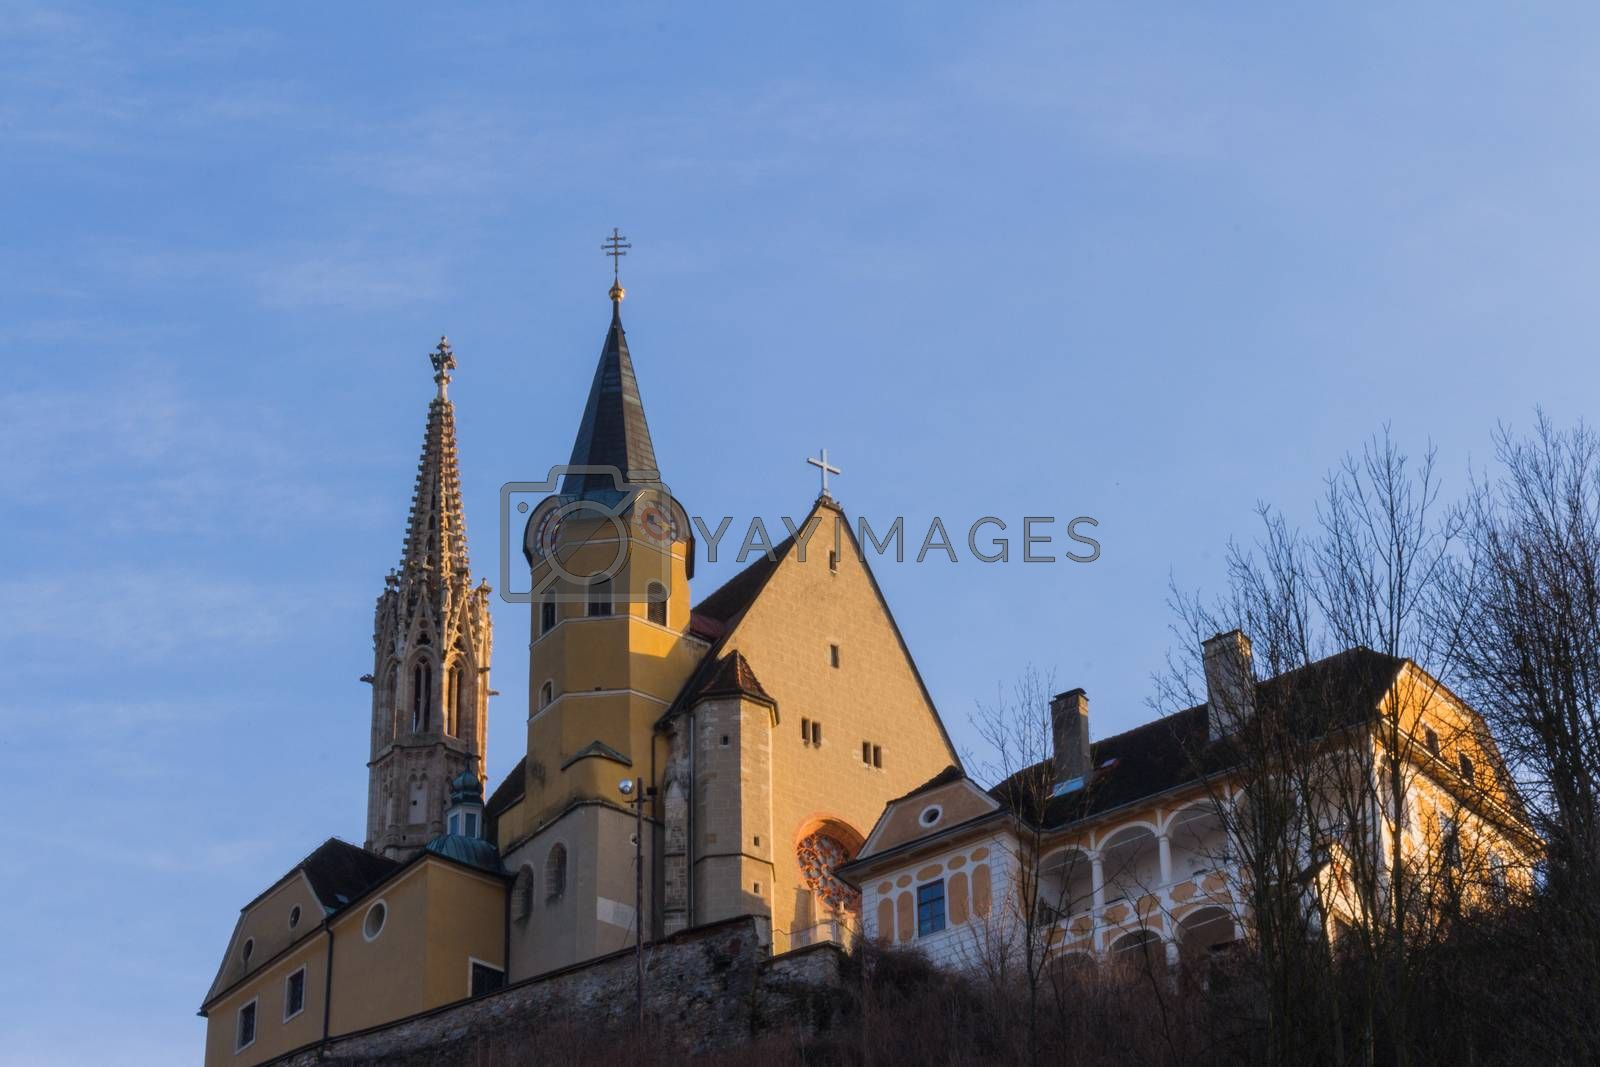 The pilgrimage church of Maria Strassengel is a Catholic parish and pilgrimage church in the village of Jews-Strassengel in Styria